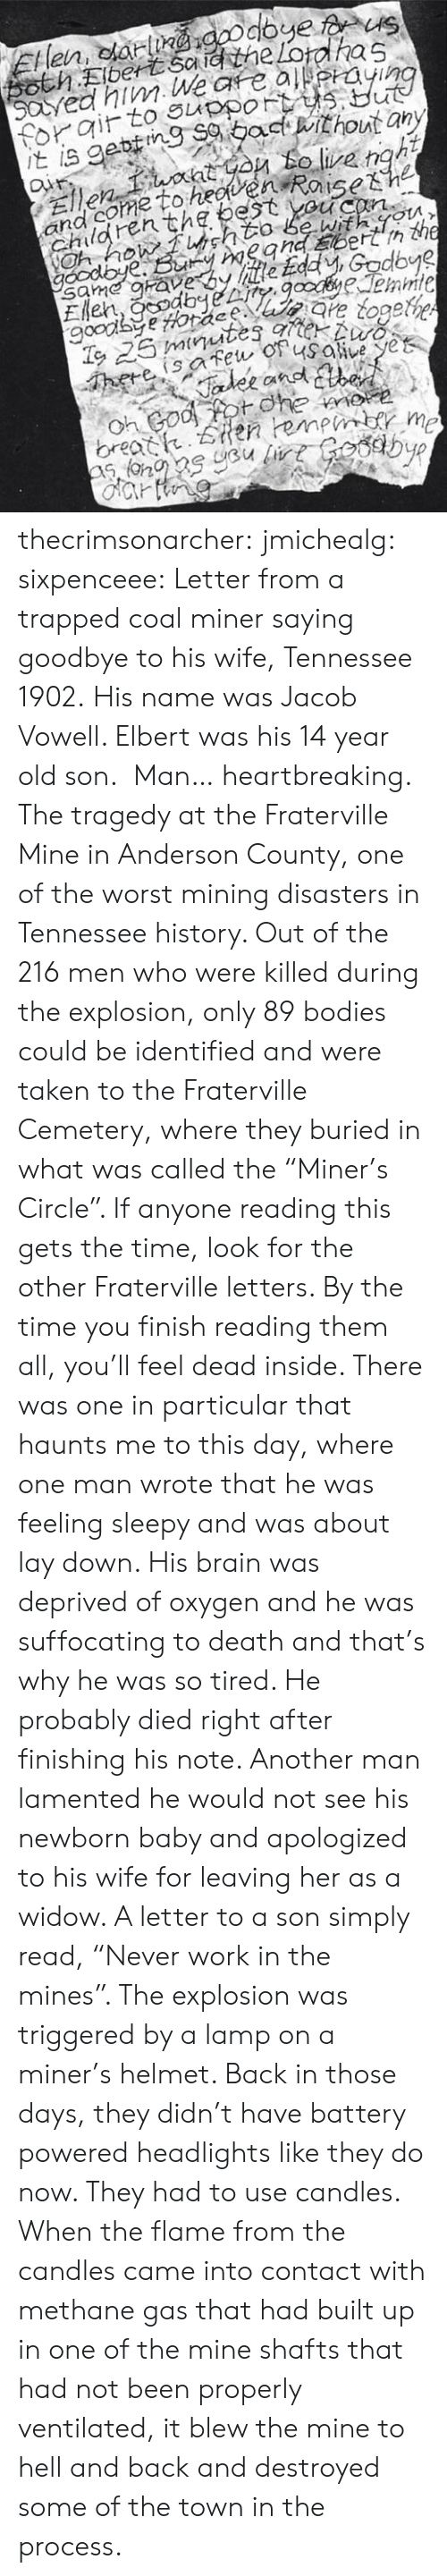 """Hell And Back: and come to heoven  Chden thg bestsh2  With m  Uu? thecrimsonarcher: jmichealg:  sixpenceee:  Letter from a trapped coal miner saying goodbye to his wife, Tennessee 1902.His name was Jacob Vowell. Elbert was his 14 year old son.  Man… heartbreaking.    The tragedy at the Fraterville Mine in Anderson County, one of the worst mining disasters in Tennessee history. Out of the 216 men who were killed during the explosion, only 89 bodies could be identified and were taken to the Fraterville Cemetery, where they buried in what was called the """"Miner's Circle"""". If anyone reading this gets the time, look for the other Fraterville letters. By the time you finish reading them all, you'll feel dead inside. There was one in particular that haunts me to this day, where one man wrote that he was feeling sleepy and was about lay down. His brain was deprived of oxygen and he was suffocating to death and that's why he was so tired. He probably died right after finishing his note. Another man lamented he would not see his newborn baby and apologized to his wife for leaving her as a widow. A letter to a son simply read, """"Never work in the mines"""".   The explosion was triggered by a lamp on a miner's helmet. Back in those days, they didn't have battery powered headlights like they do now. They had to use candles. When the flame from the candles came into contact with methane gas that had built up in one of the mine shafts that had not been properly ventilated, it blew the mine to hell and back and destroyed some of the town in the process."""